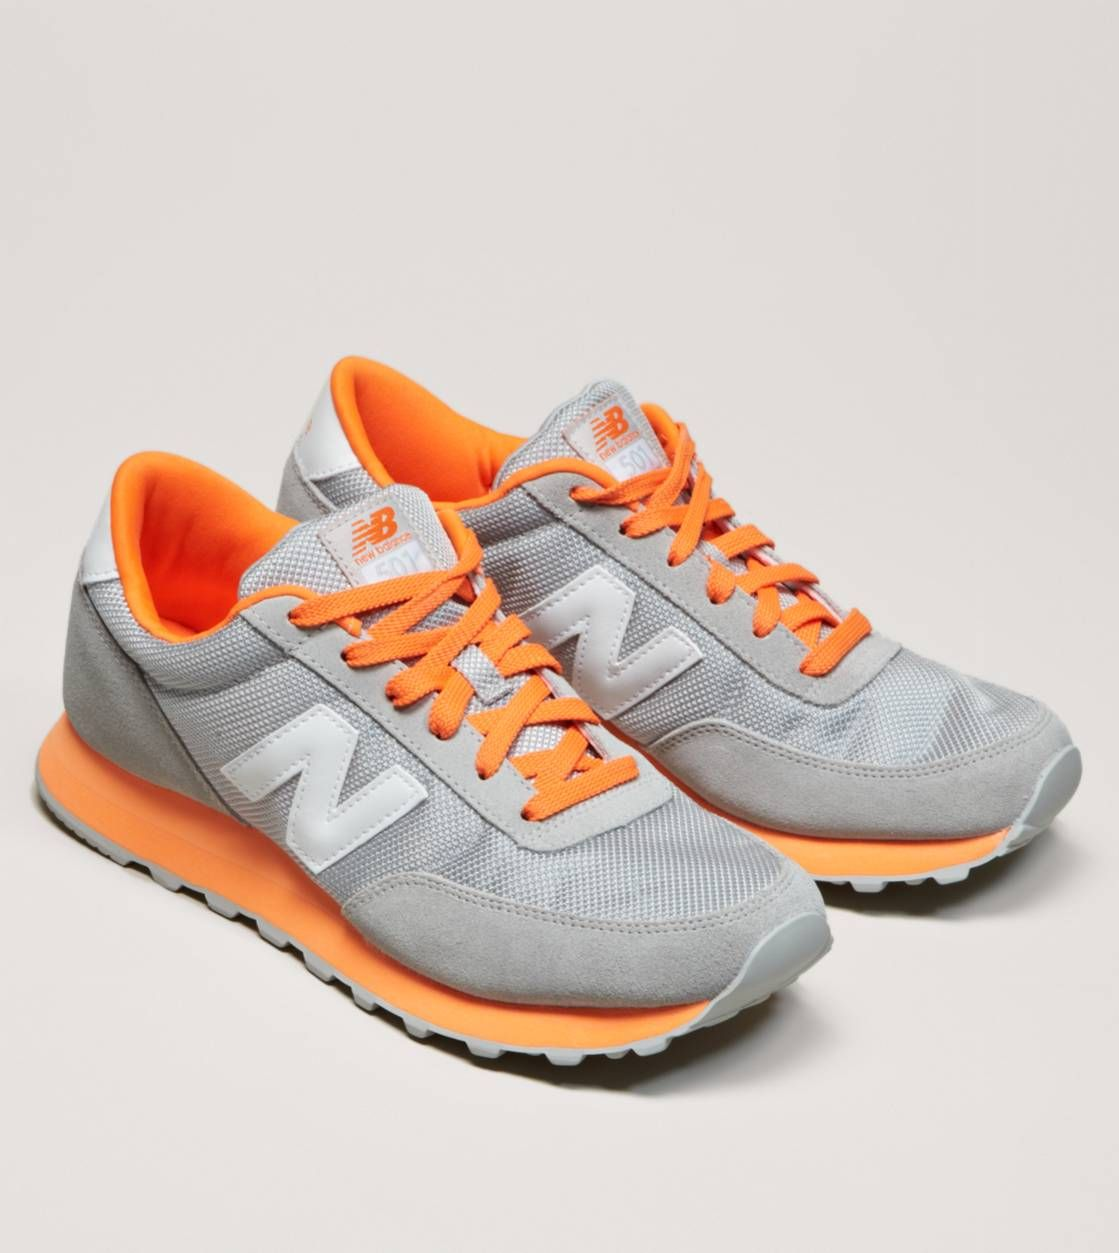 @New Balance Classics 501 Sneaker at @American Eagle Outfitters